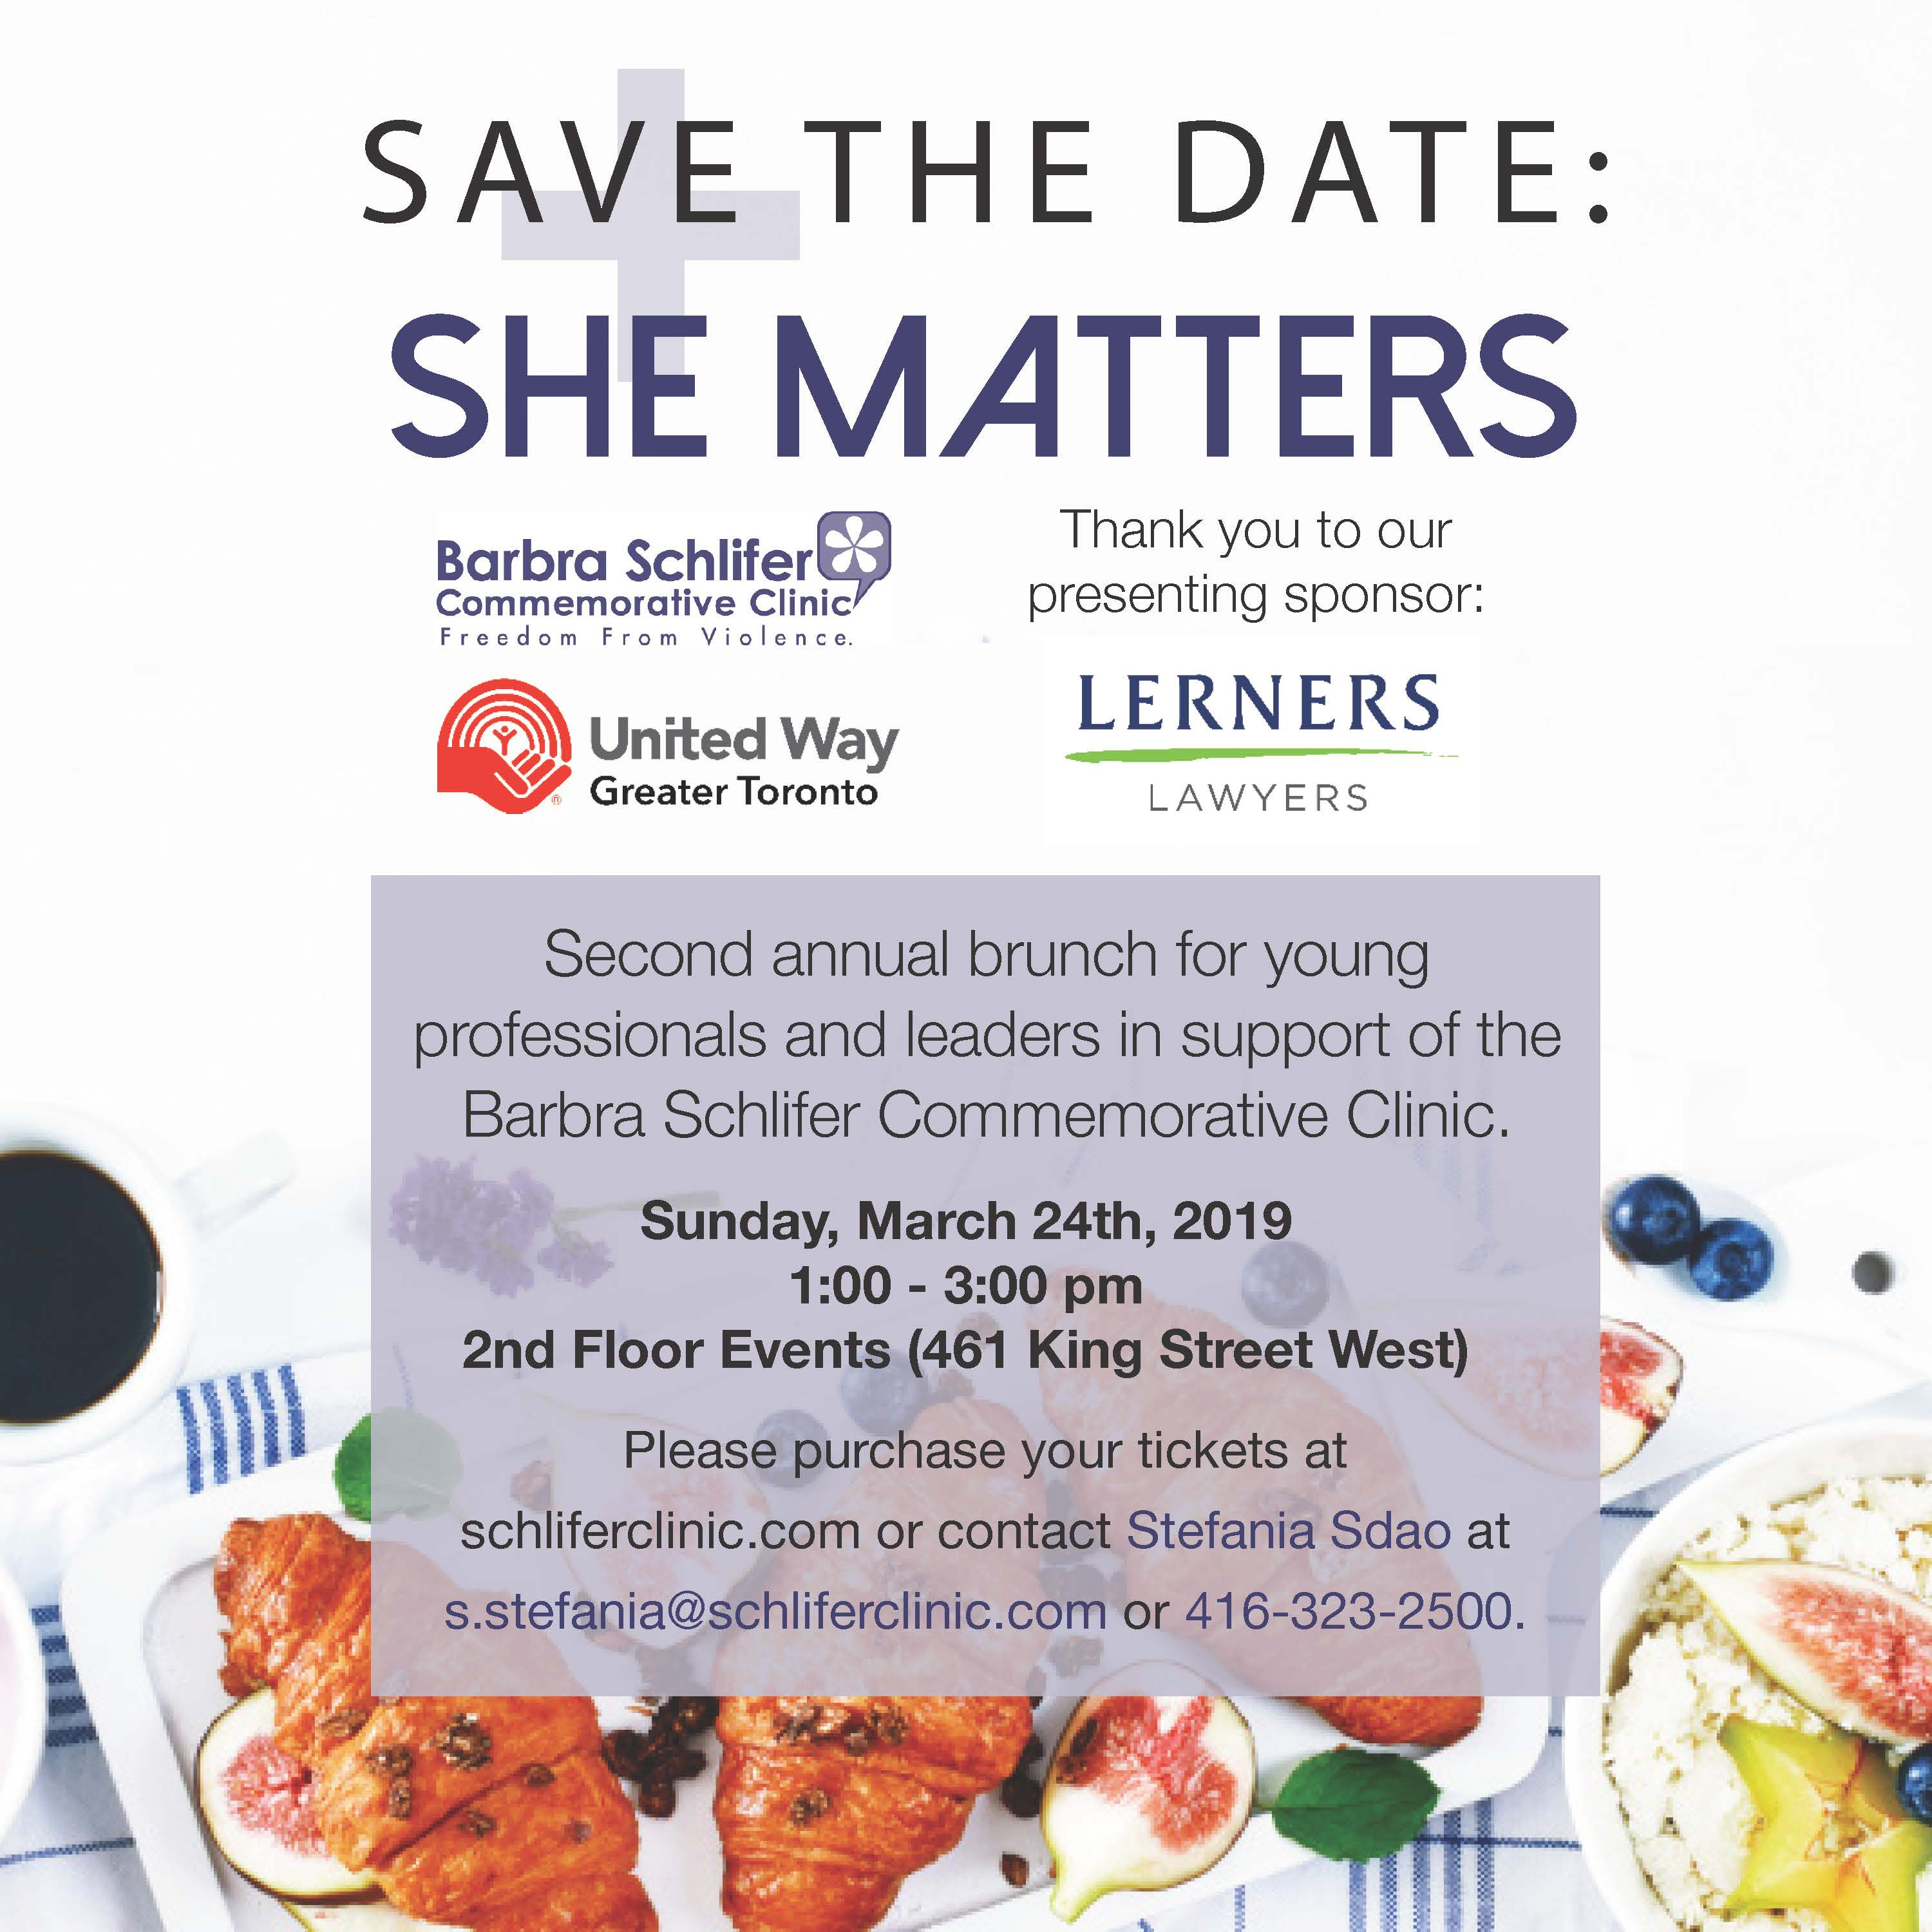 Save the Date for She Matters!